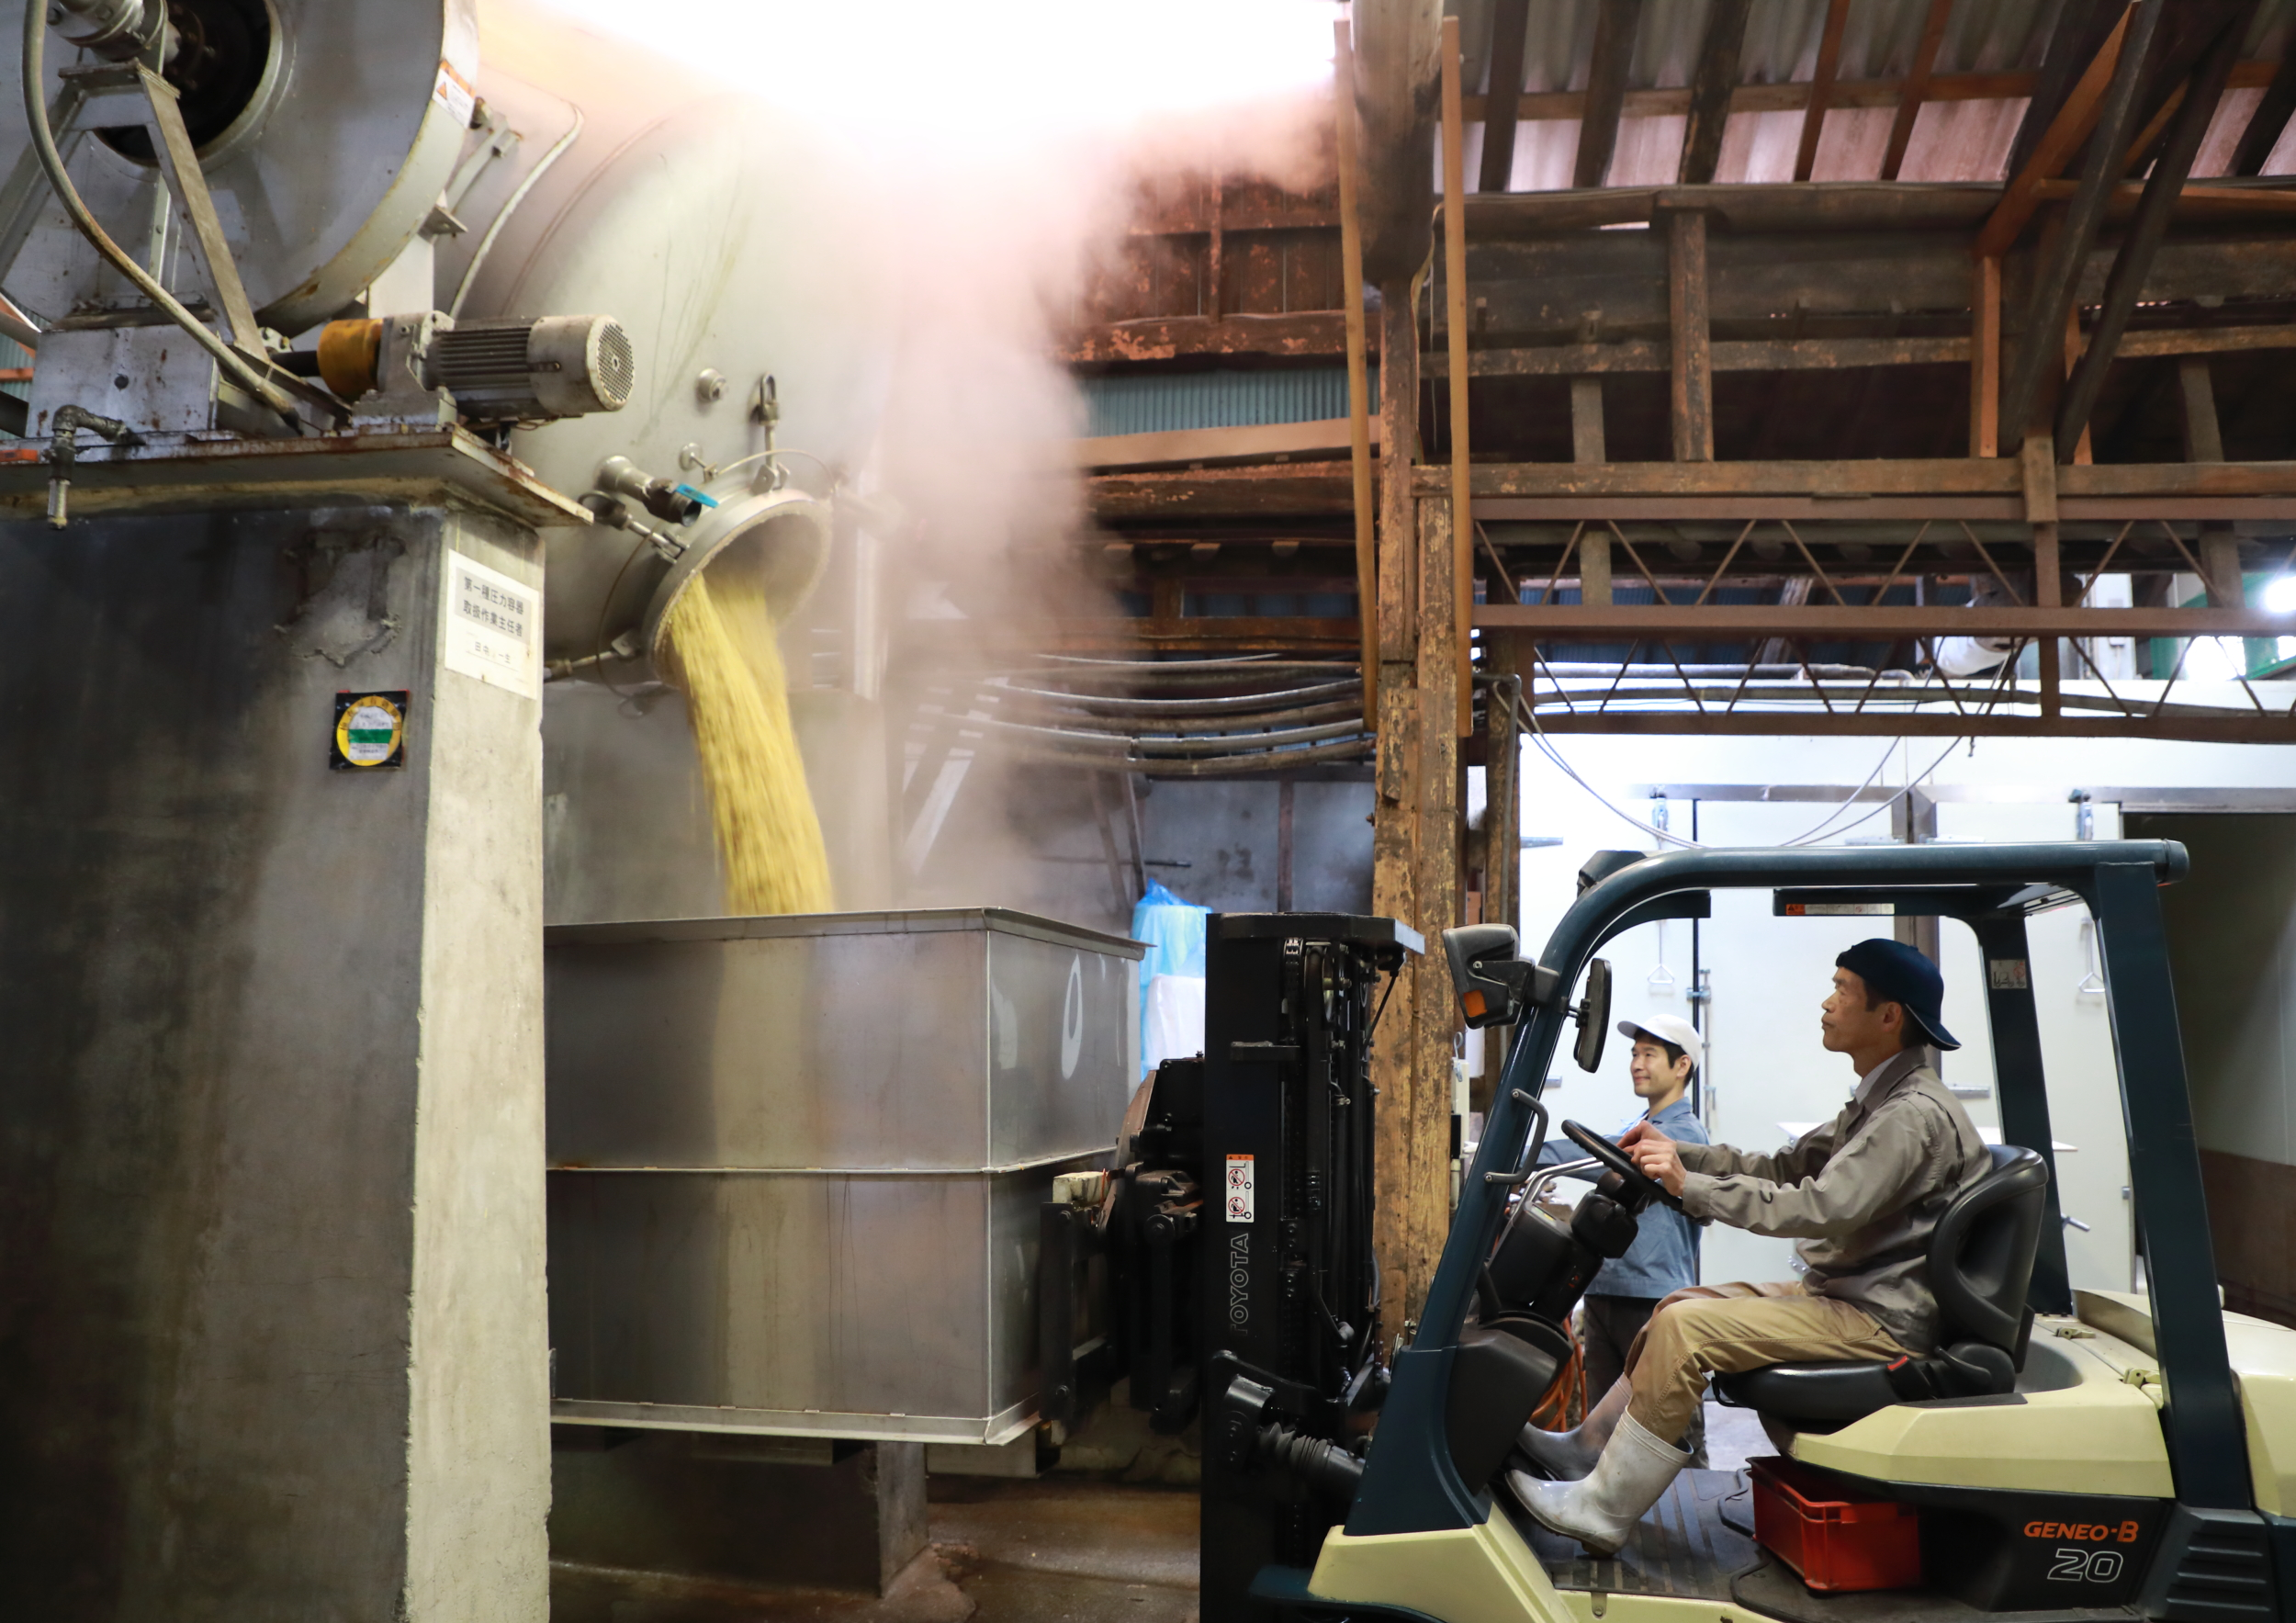 The soy sauce brewery is filled with an appetizingly rich, earthy aroma when Kazuo's brother-in-law Mr. Moriya and his son empty the steamer used to prepare the soy beans.